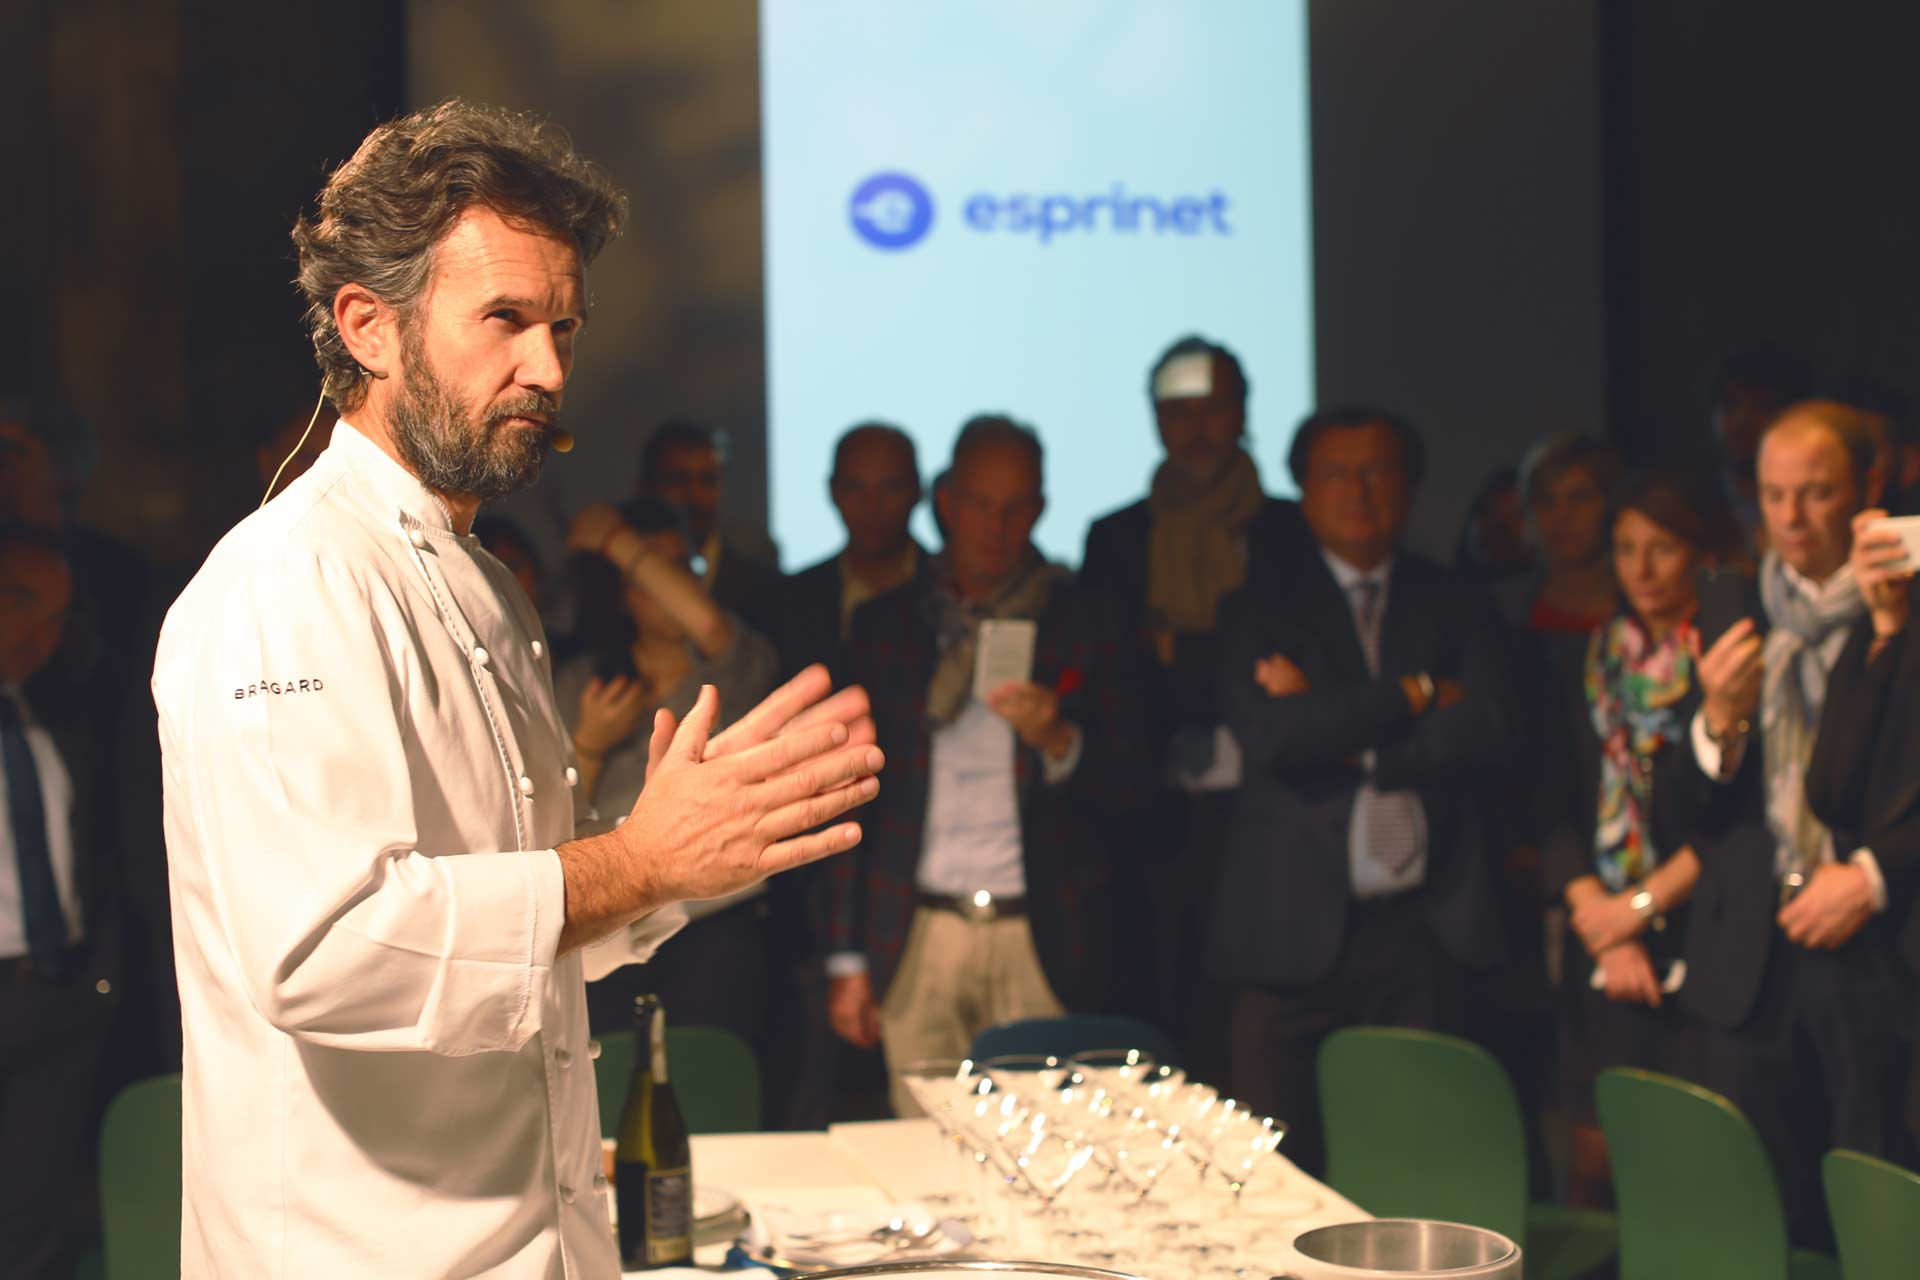 ESPRINET ASSOTEAM – EVENTO CON SHOW COOKING